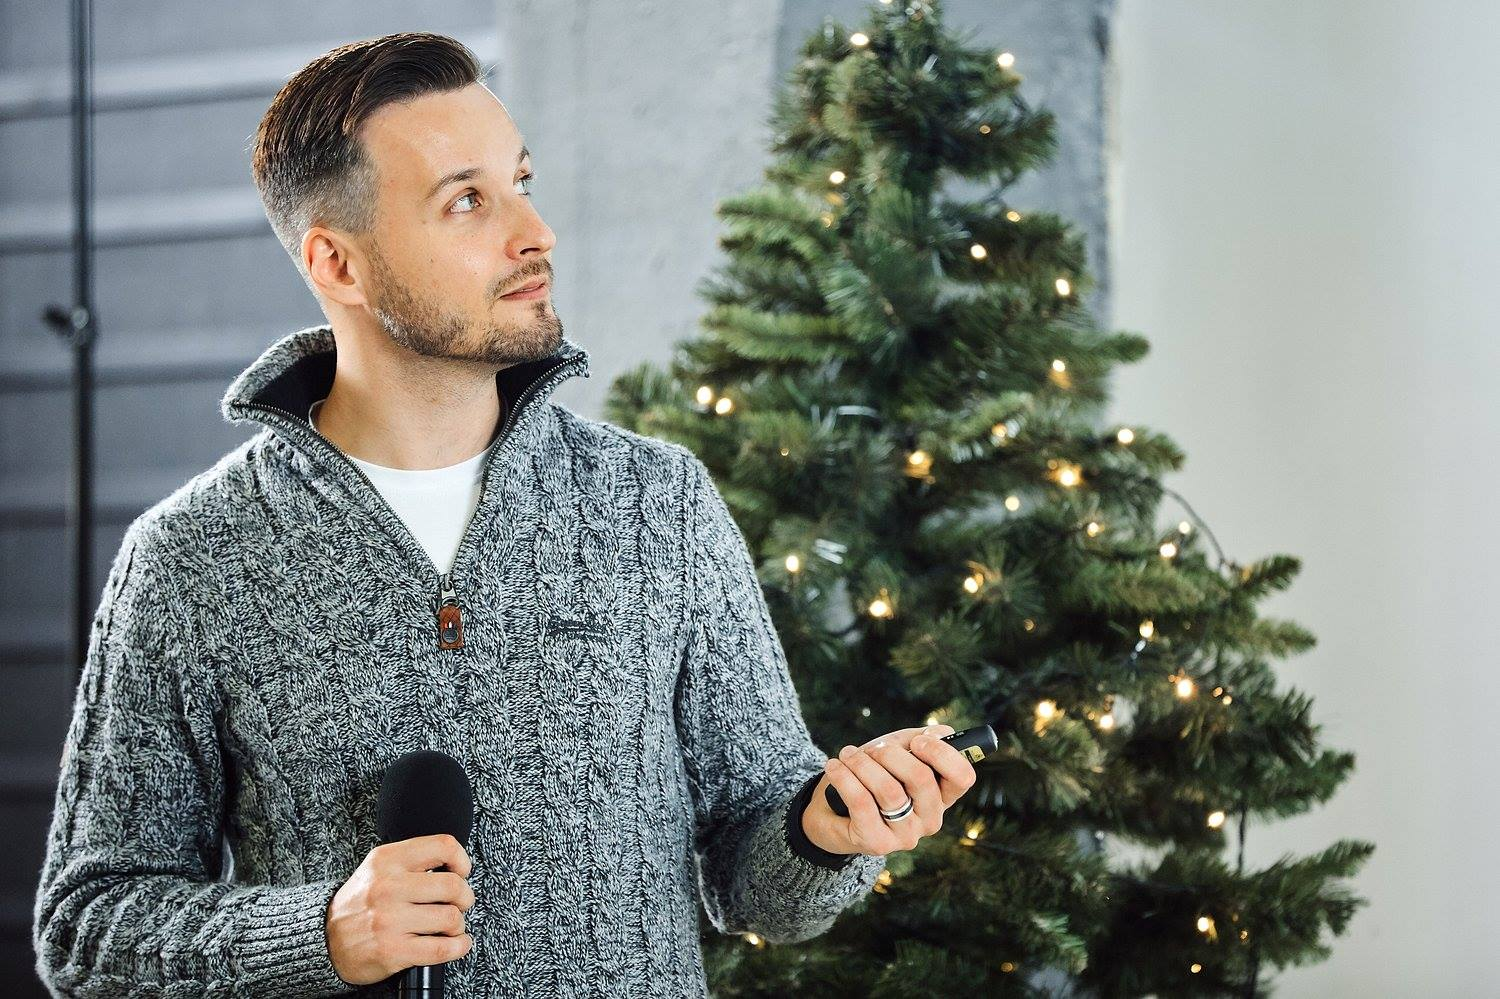 Michael Sender talking at SchibsTED Talks in December 2017, Minsk.